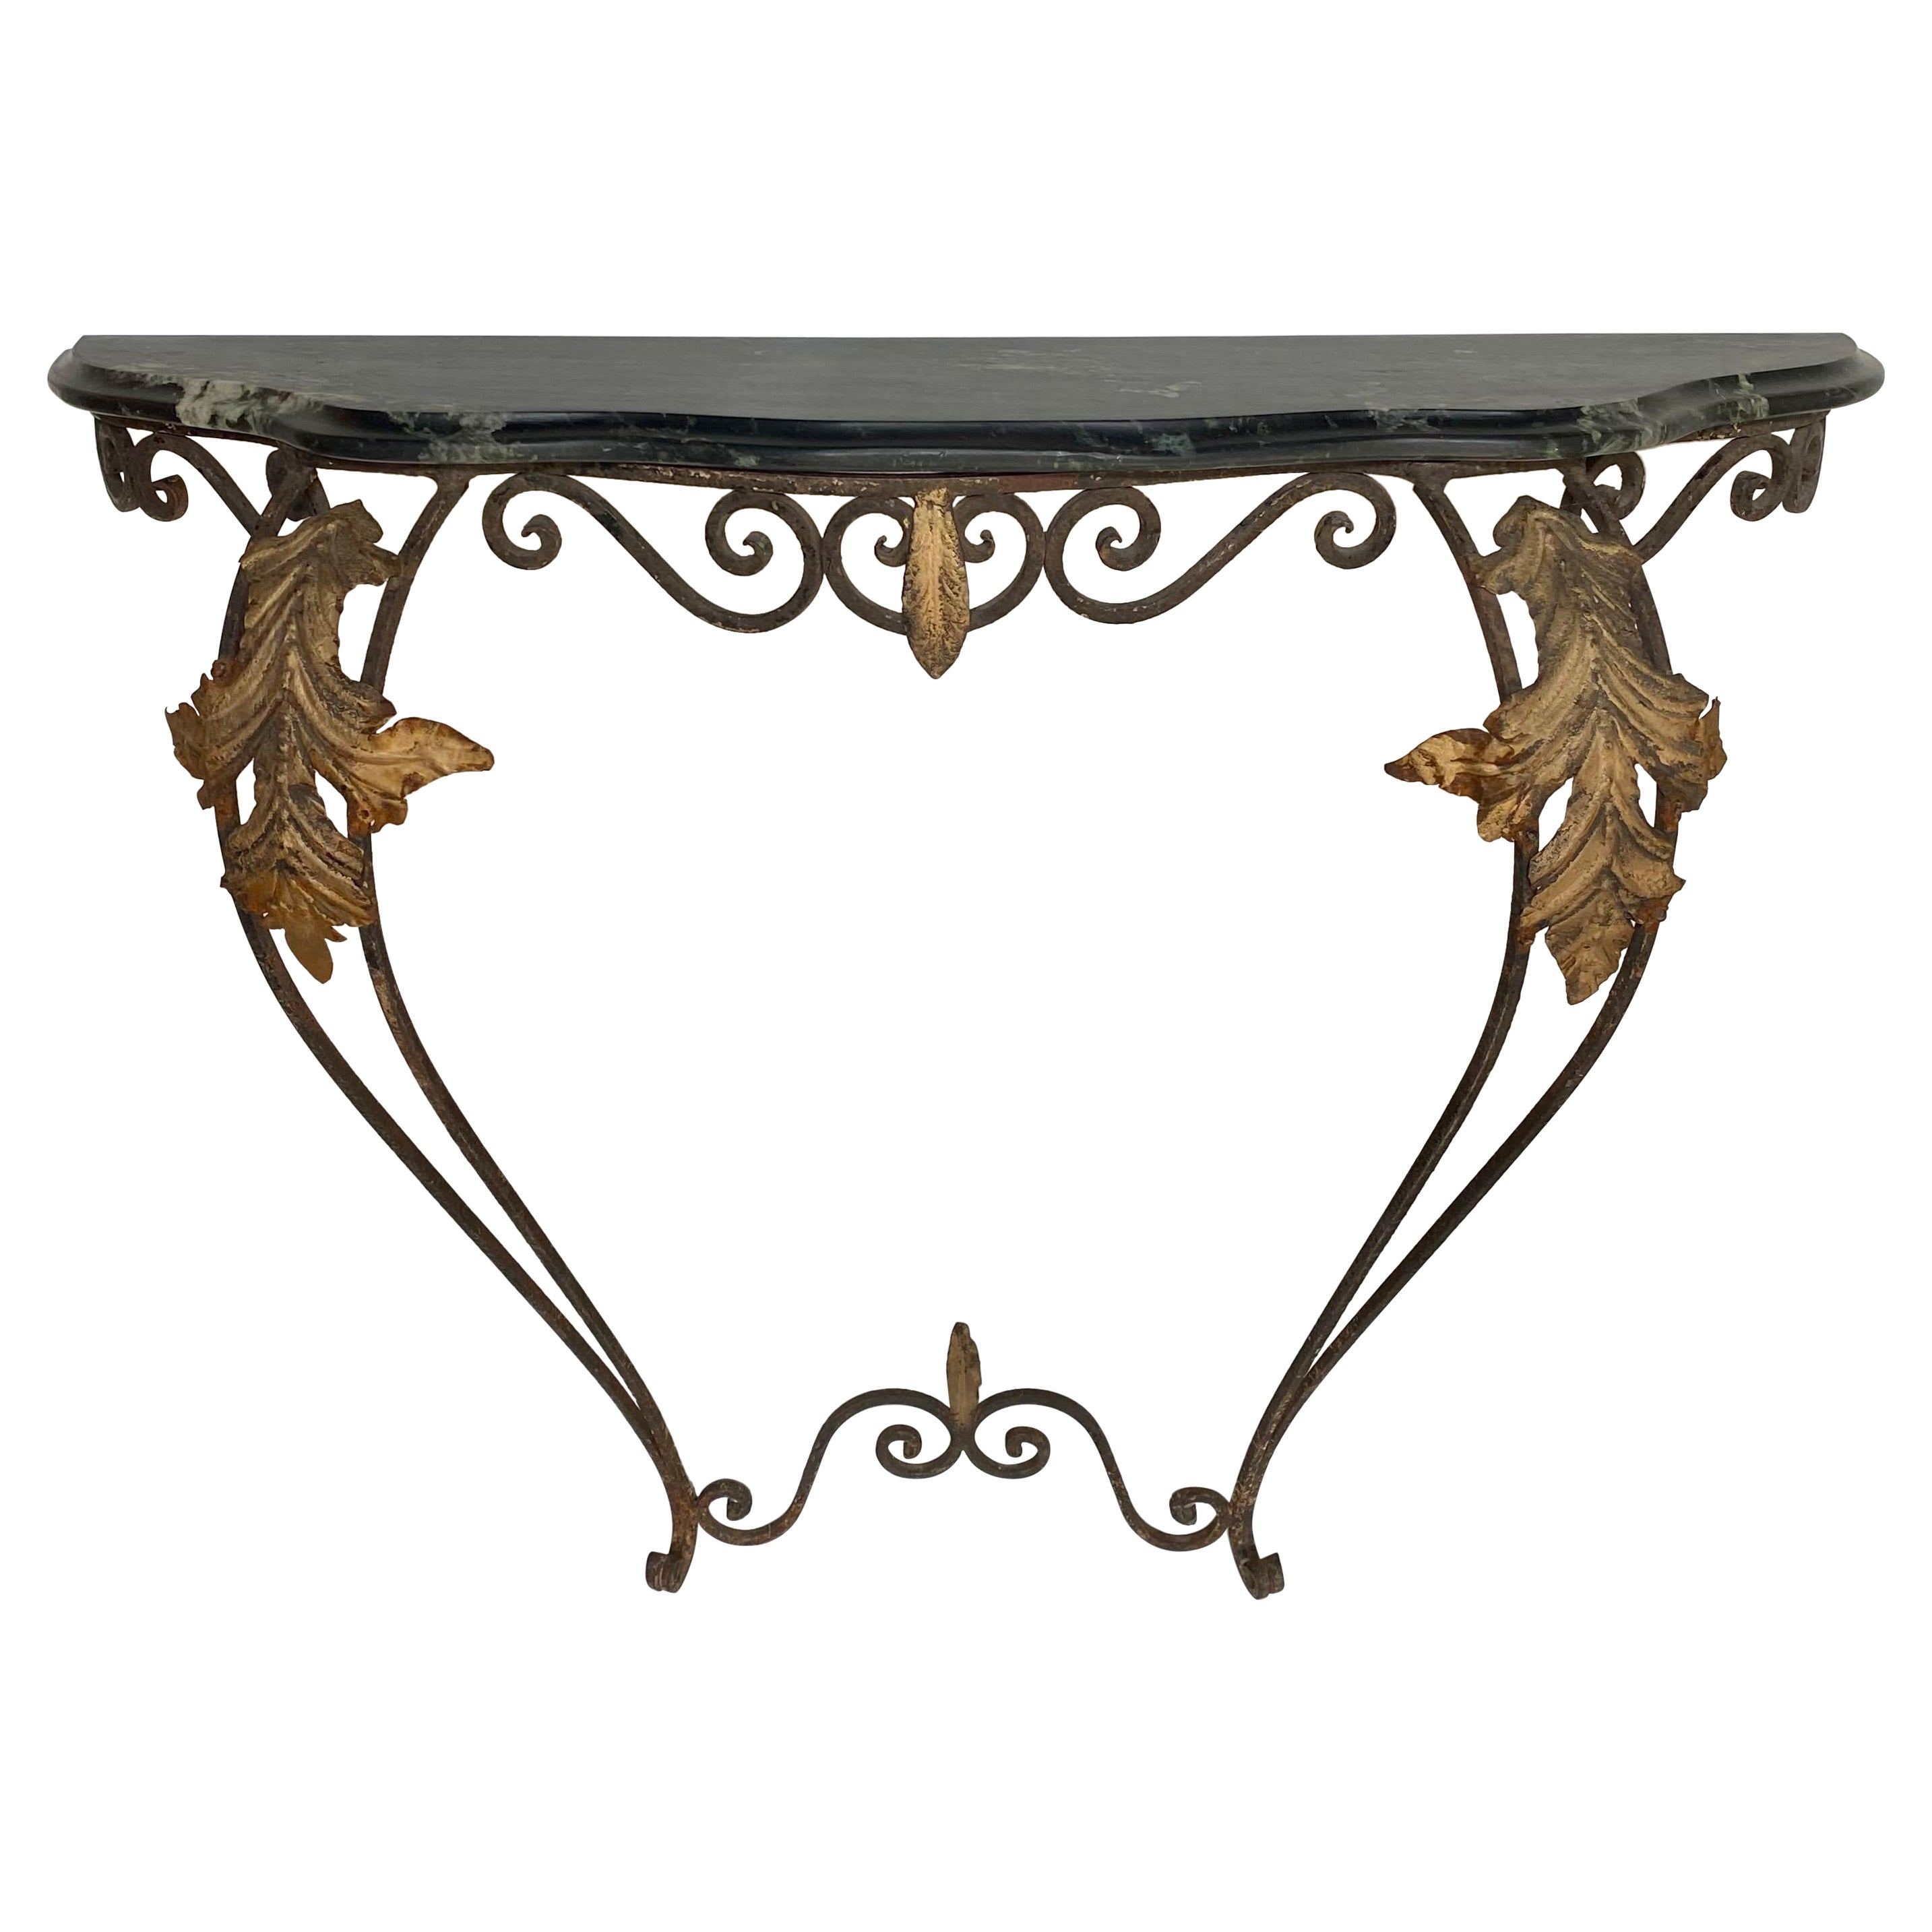 French Louis XV Style Gilt Wrought Iron and Marble Wall Mount Console Table